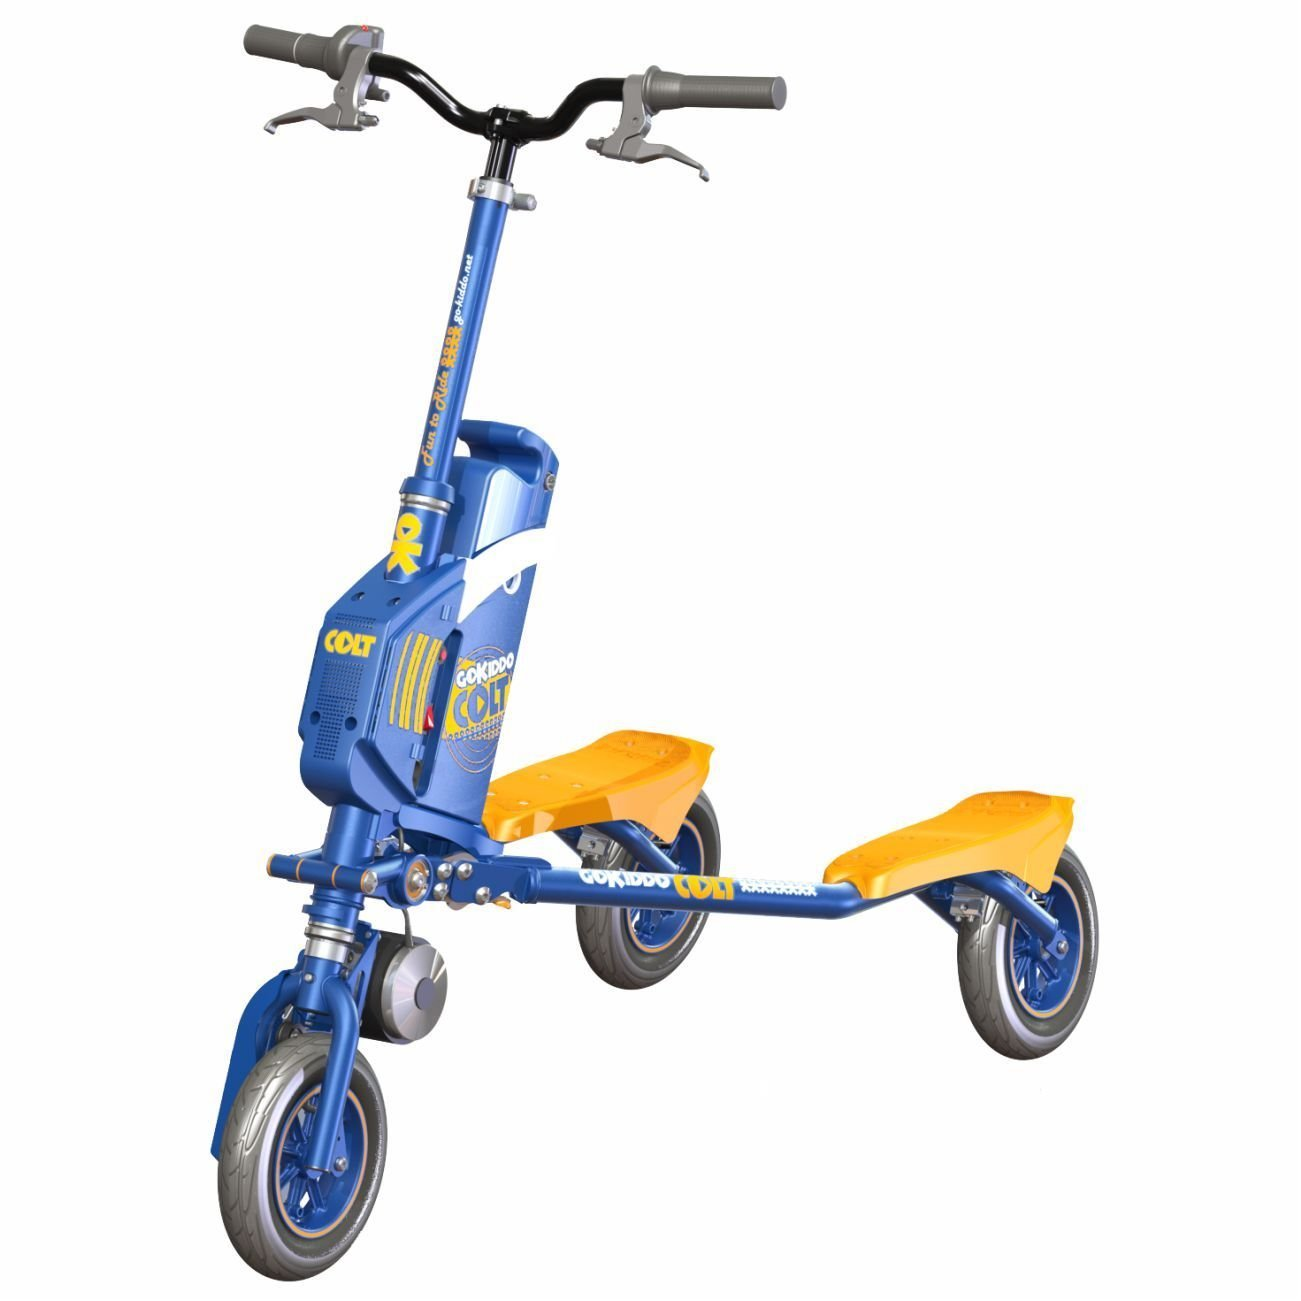 Go-Kiddo COLT Electric Carving Scooter, Blue